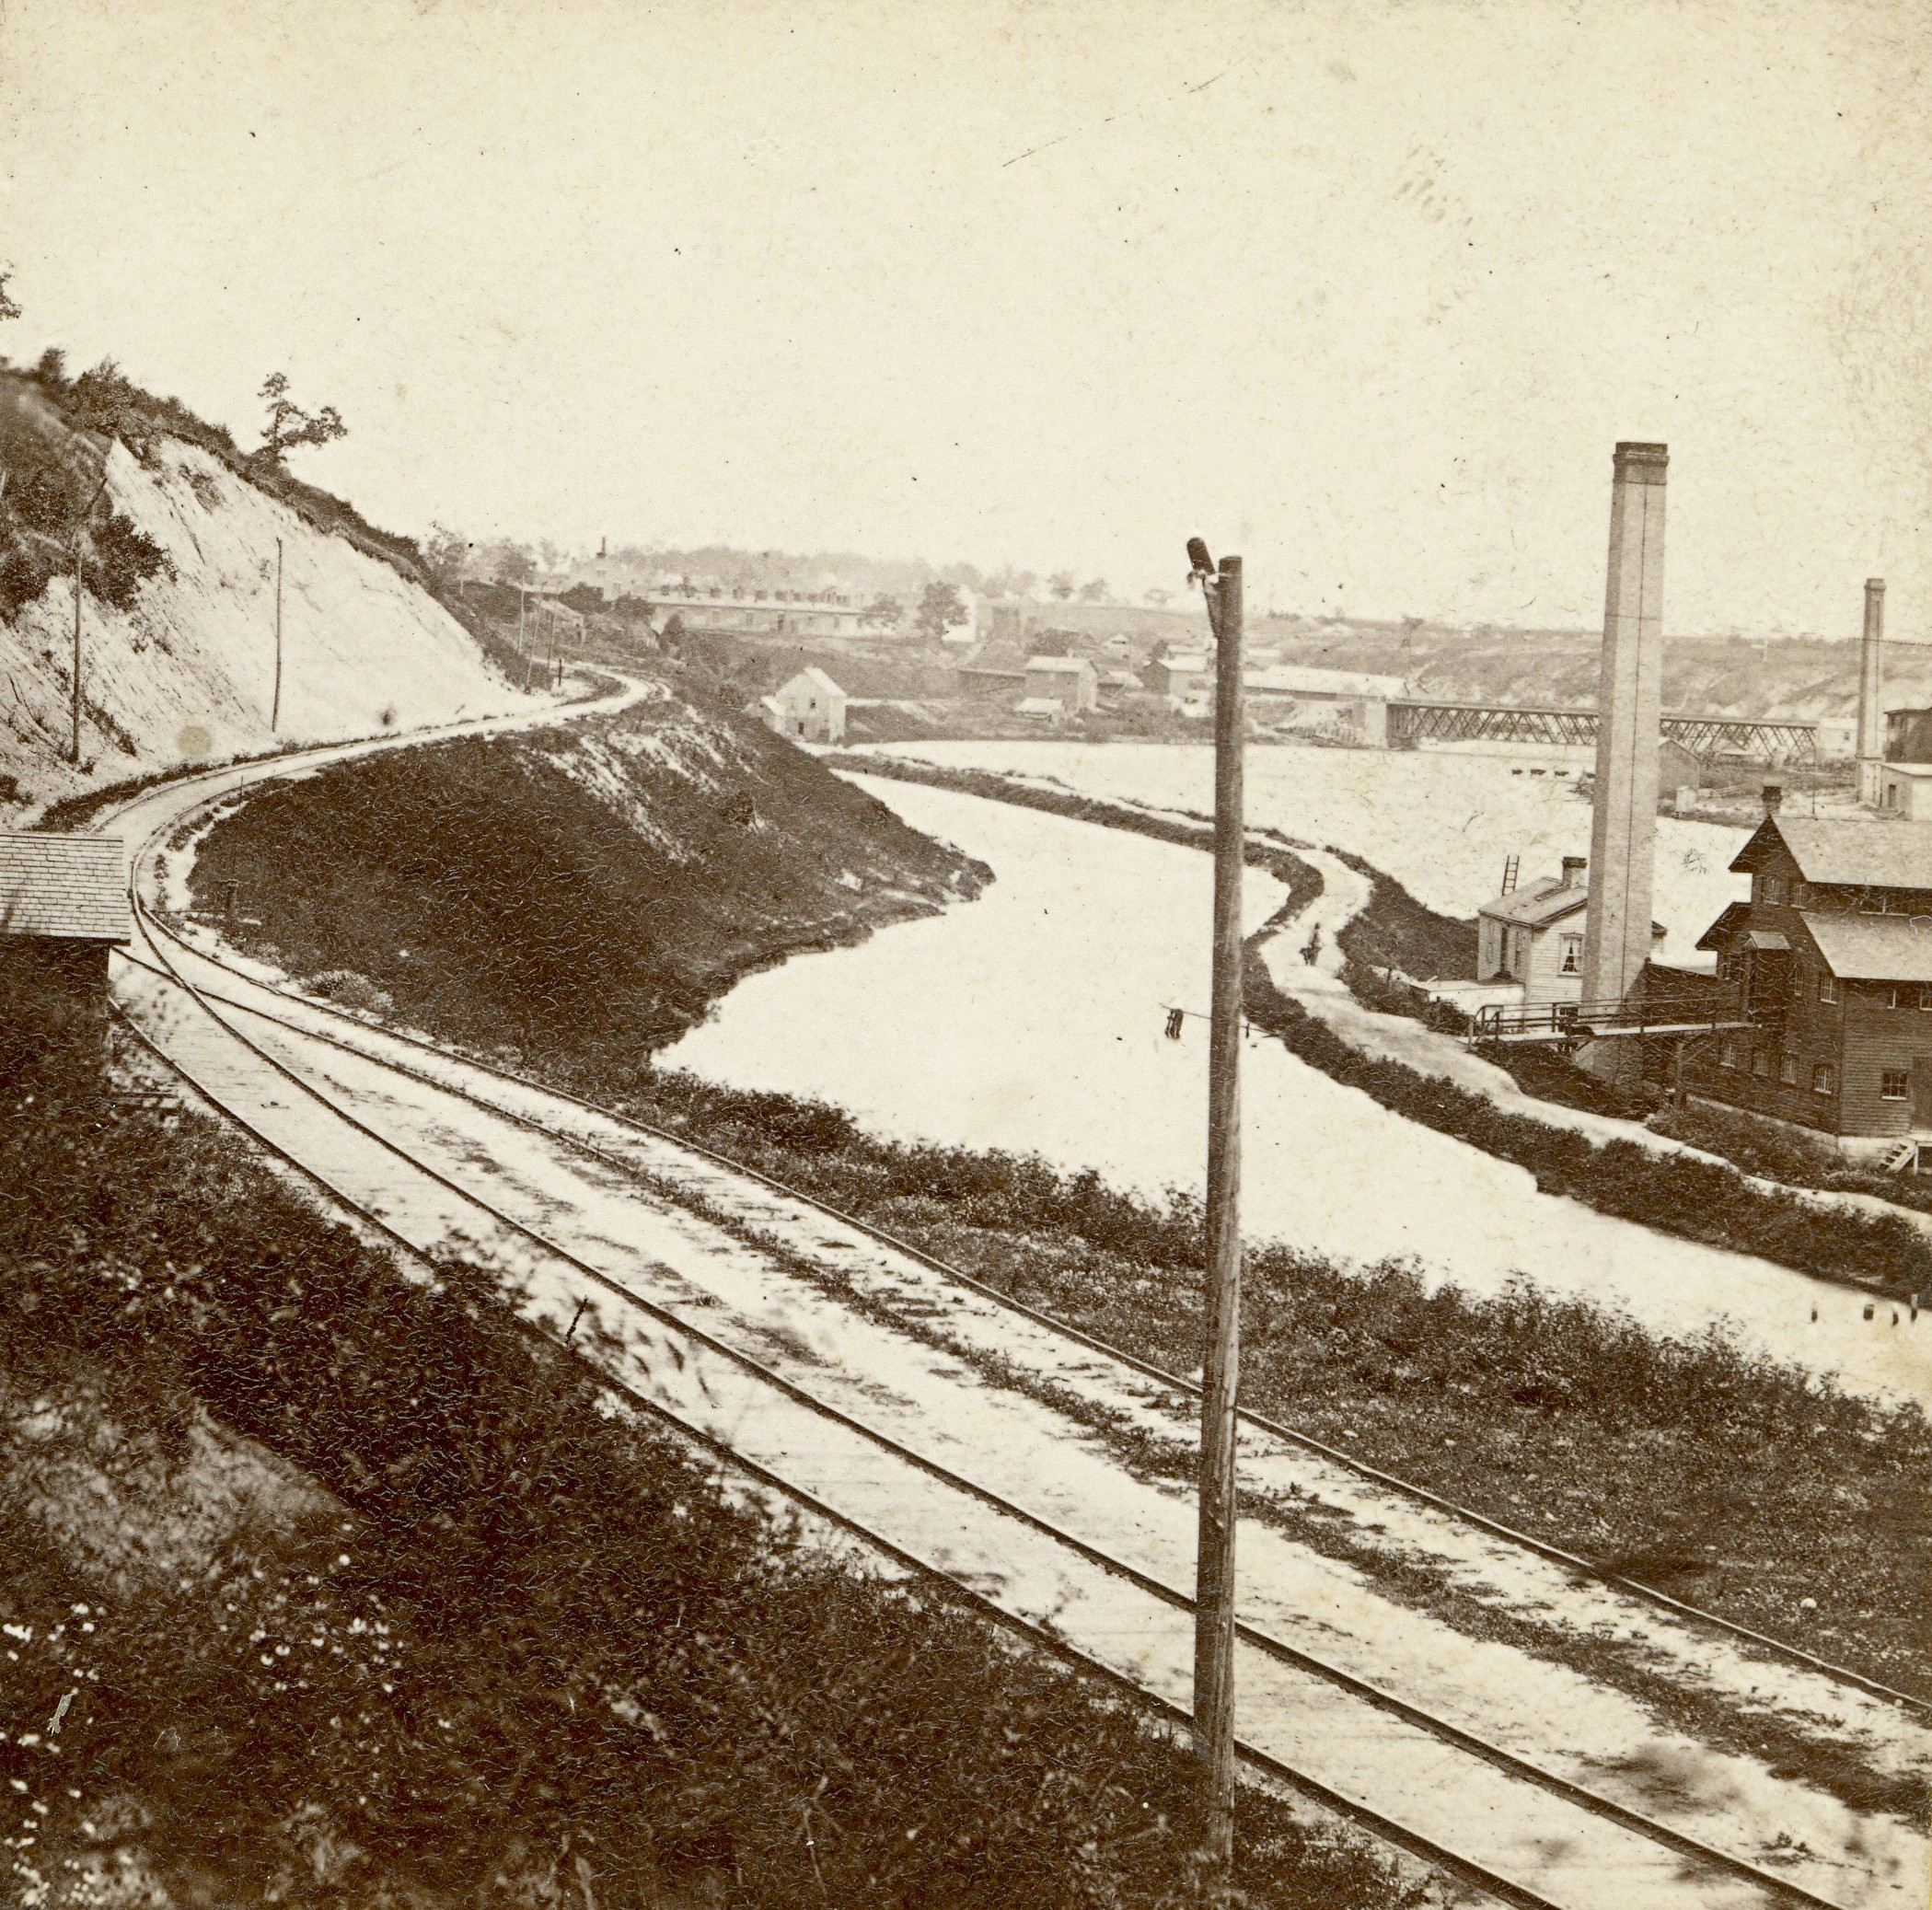 Rock River Canal, 1860s